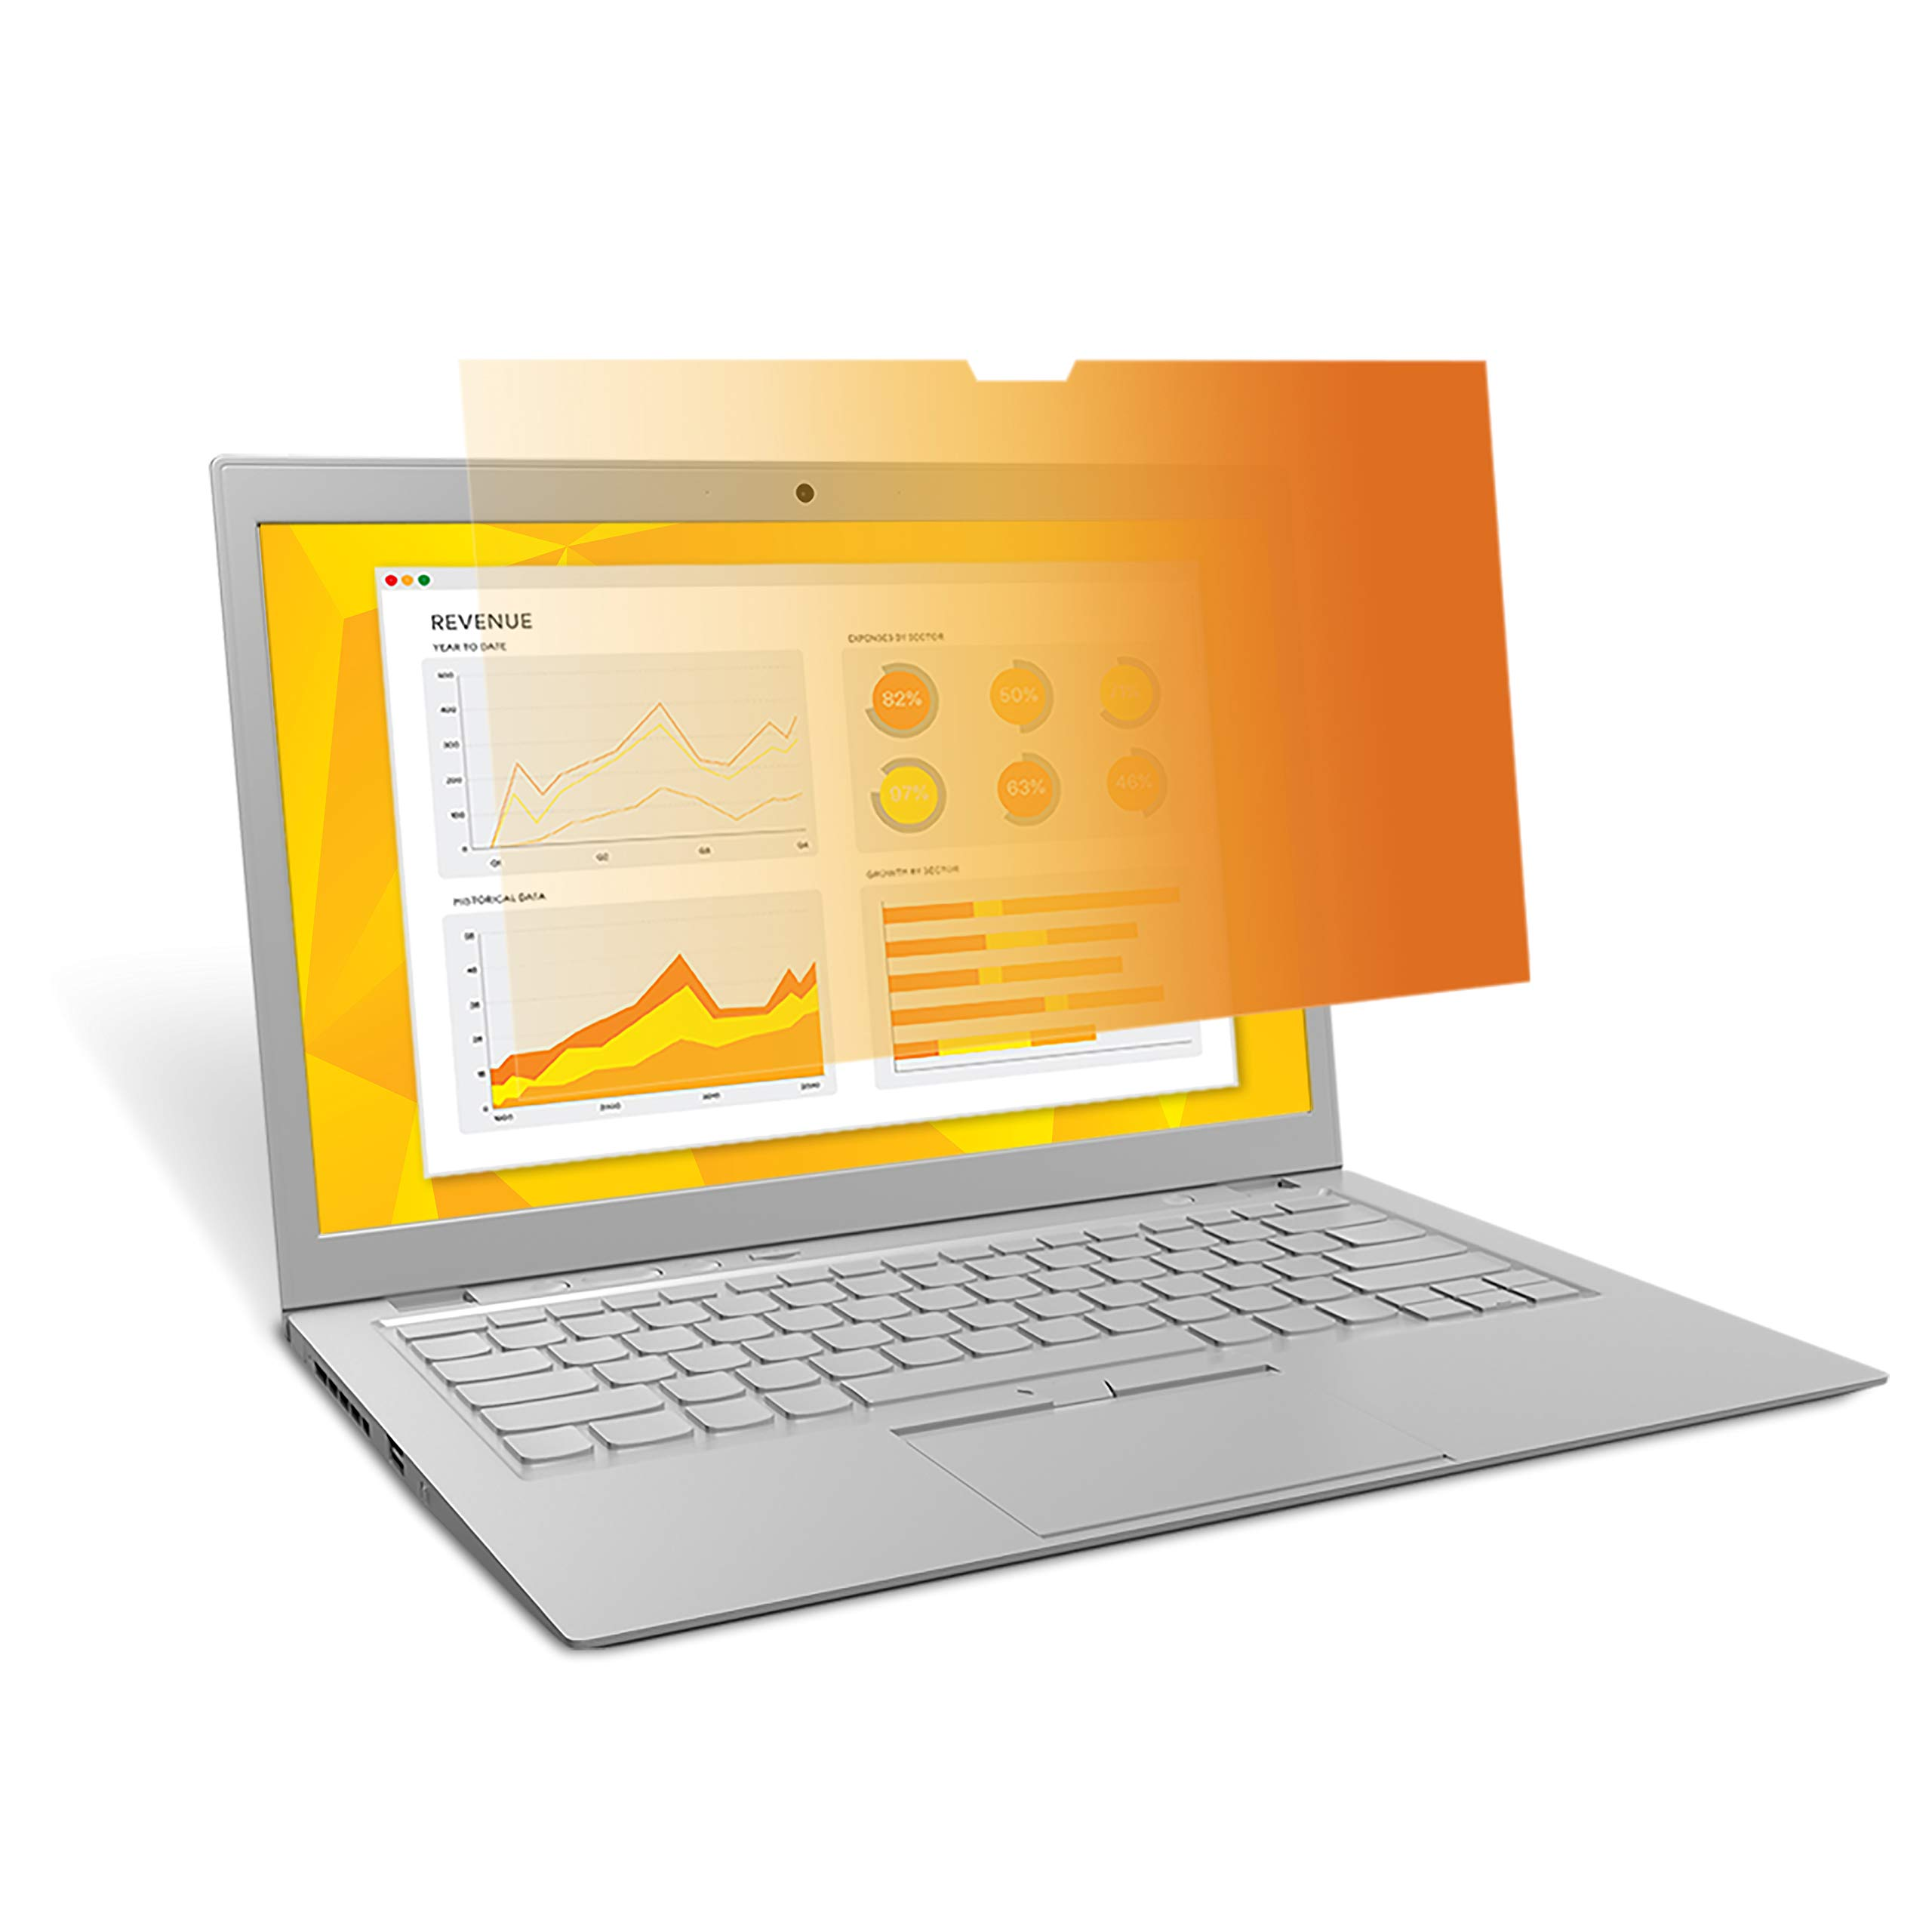 3M Gold Privacy Filter for 11.6'' Widescreen Laptop (GF116W9B)